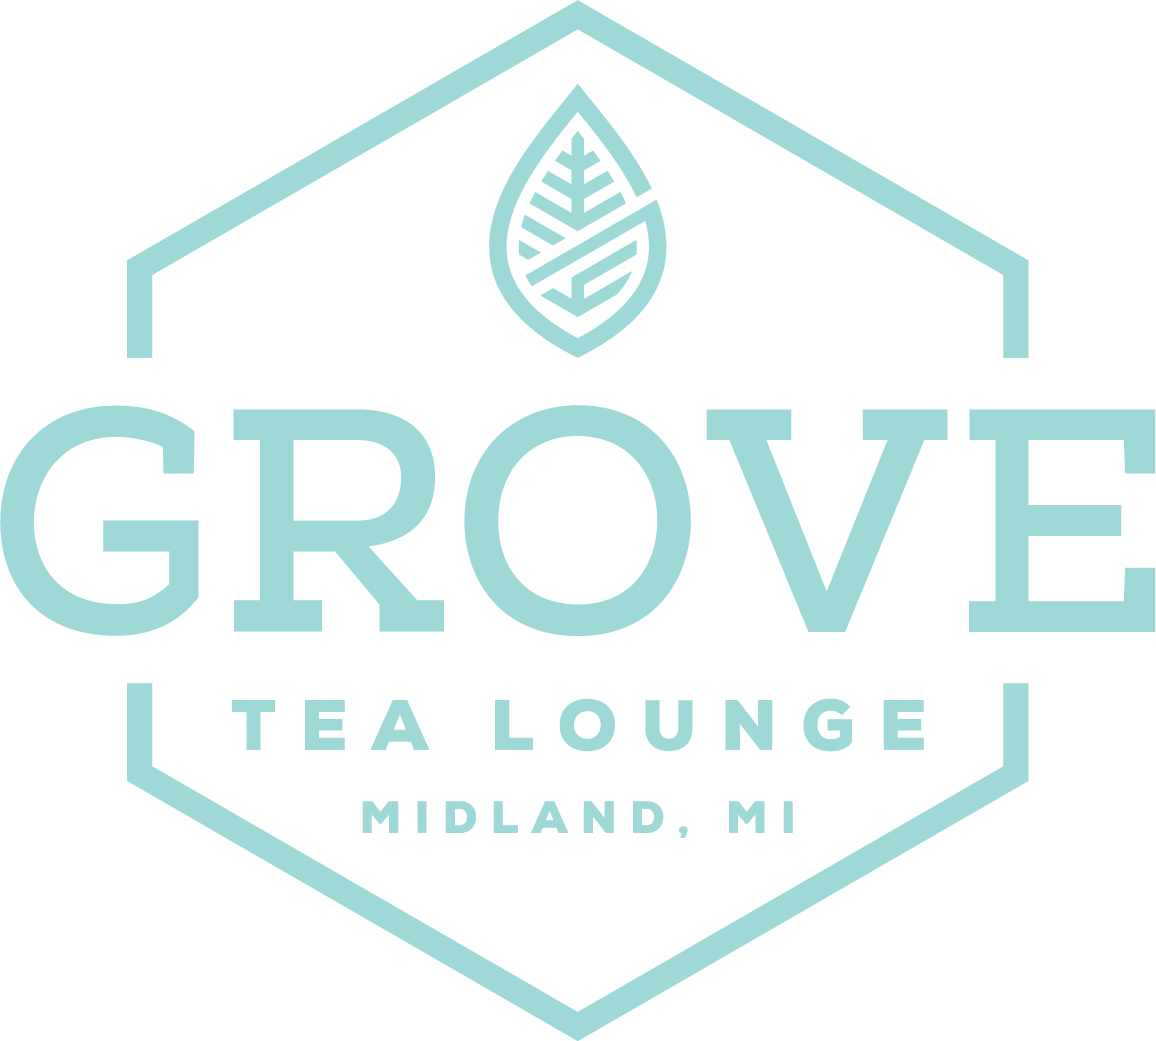 Grove Tea Lounge